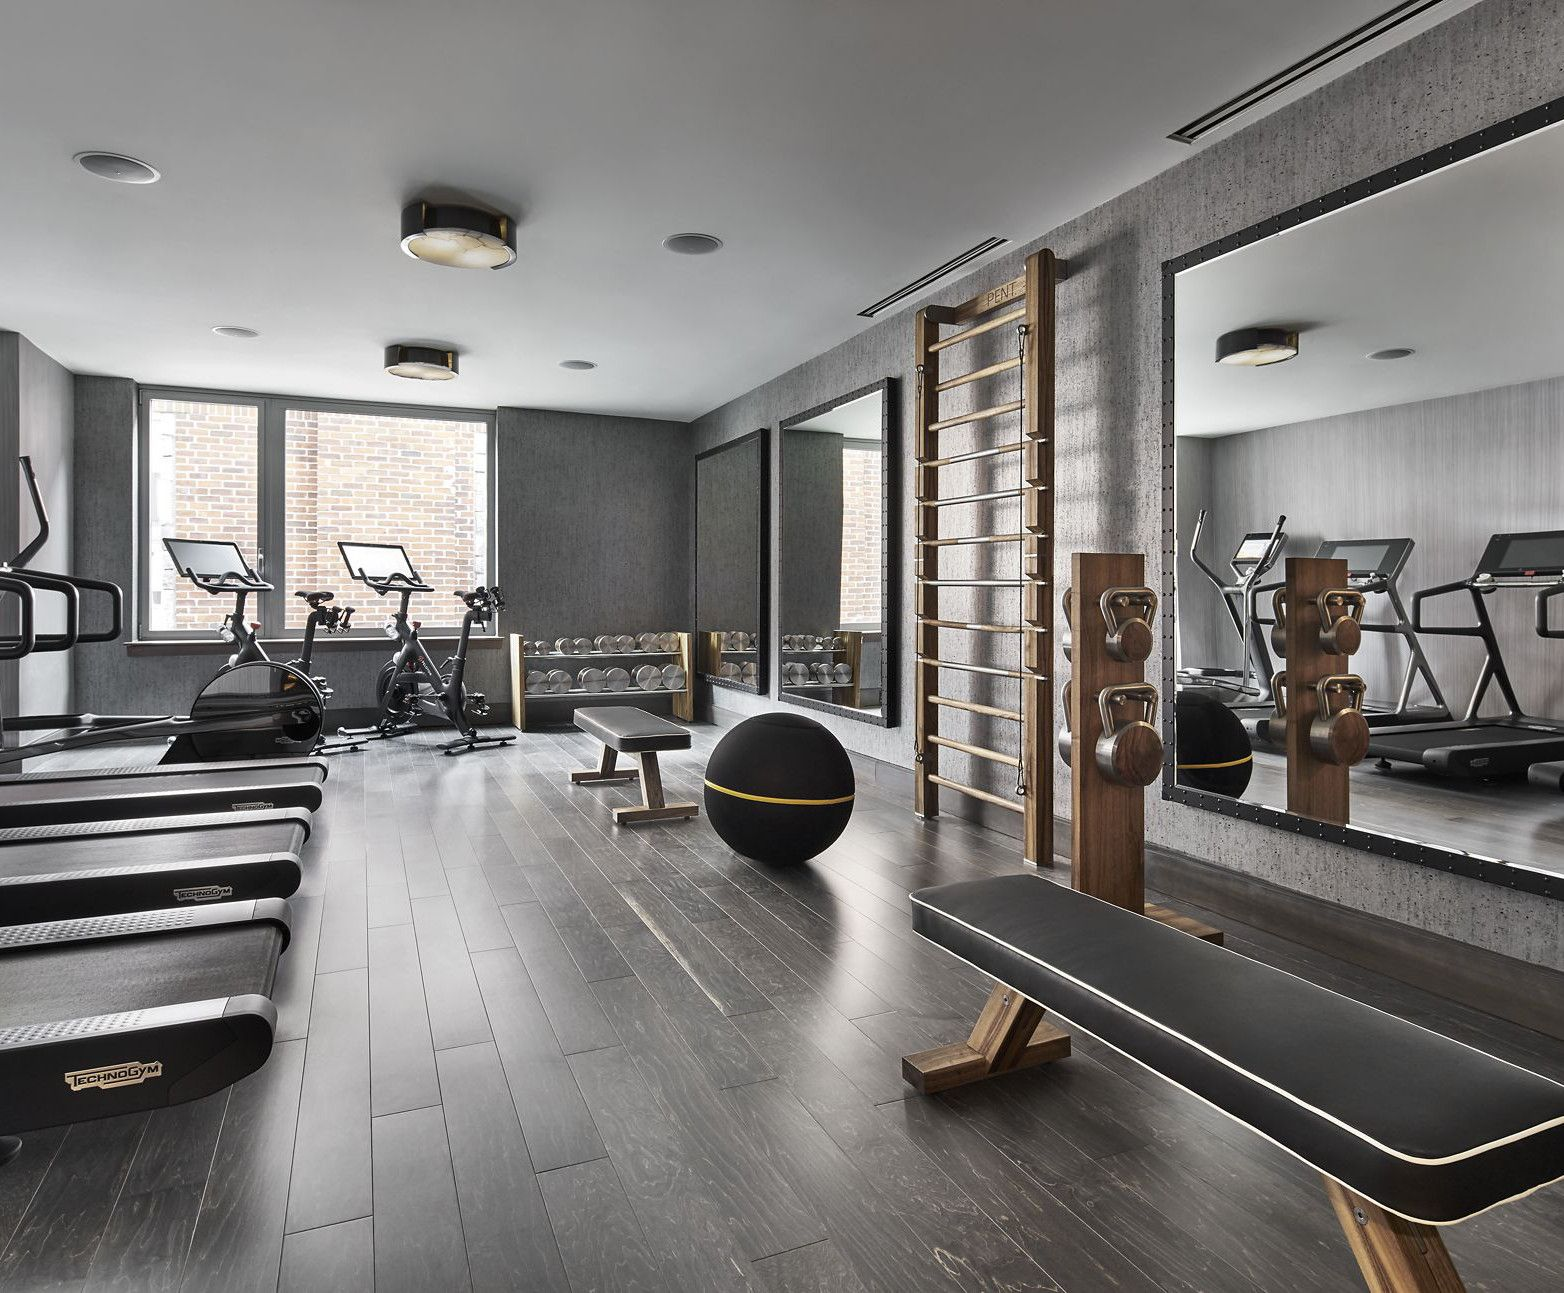 luxury fitness home gym equipment and for personal studio dumbbells wal bar exercise bench. Black Bedroom Furniture Sets. Home Design Ideas